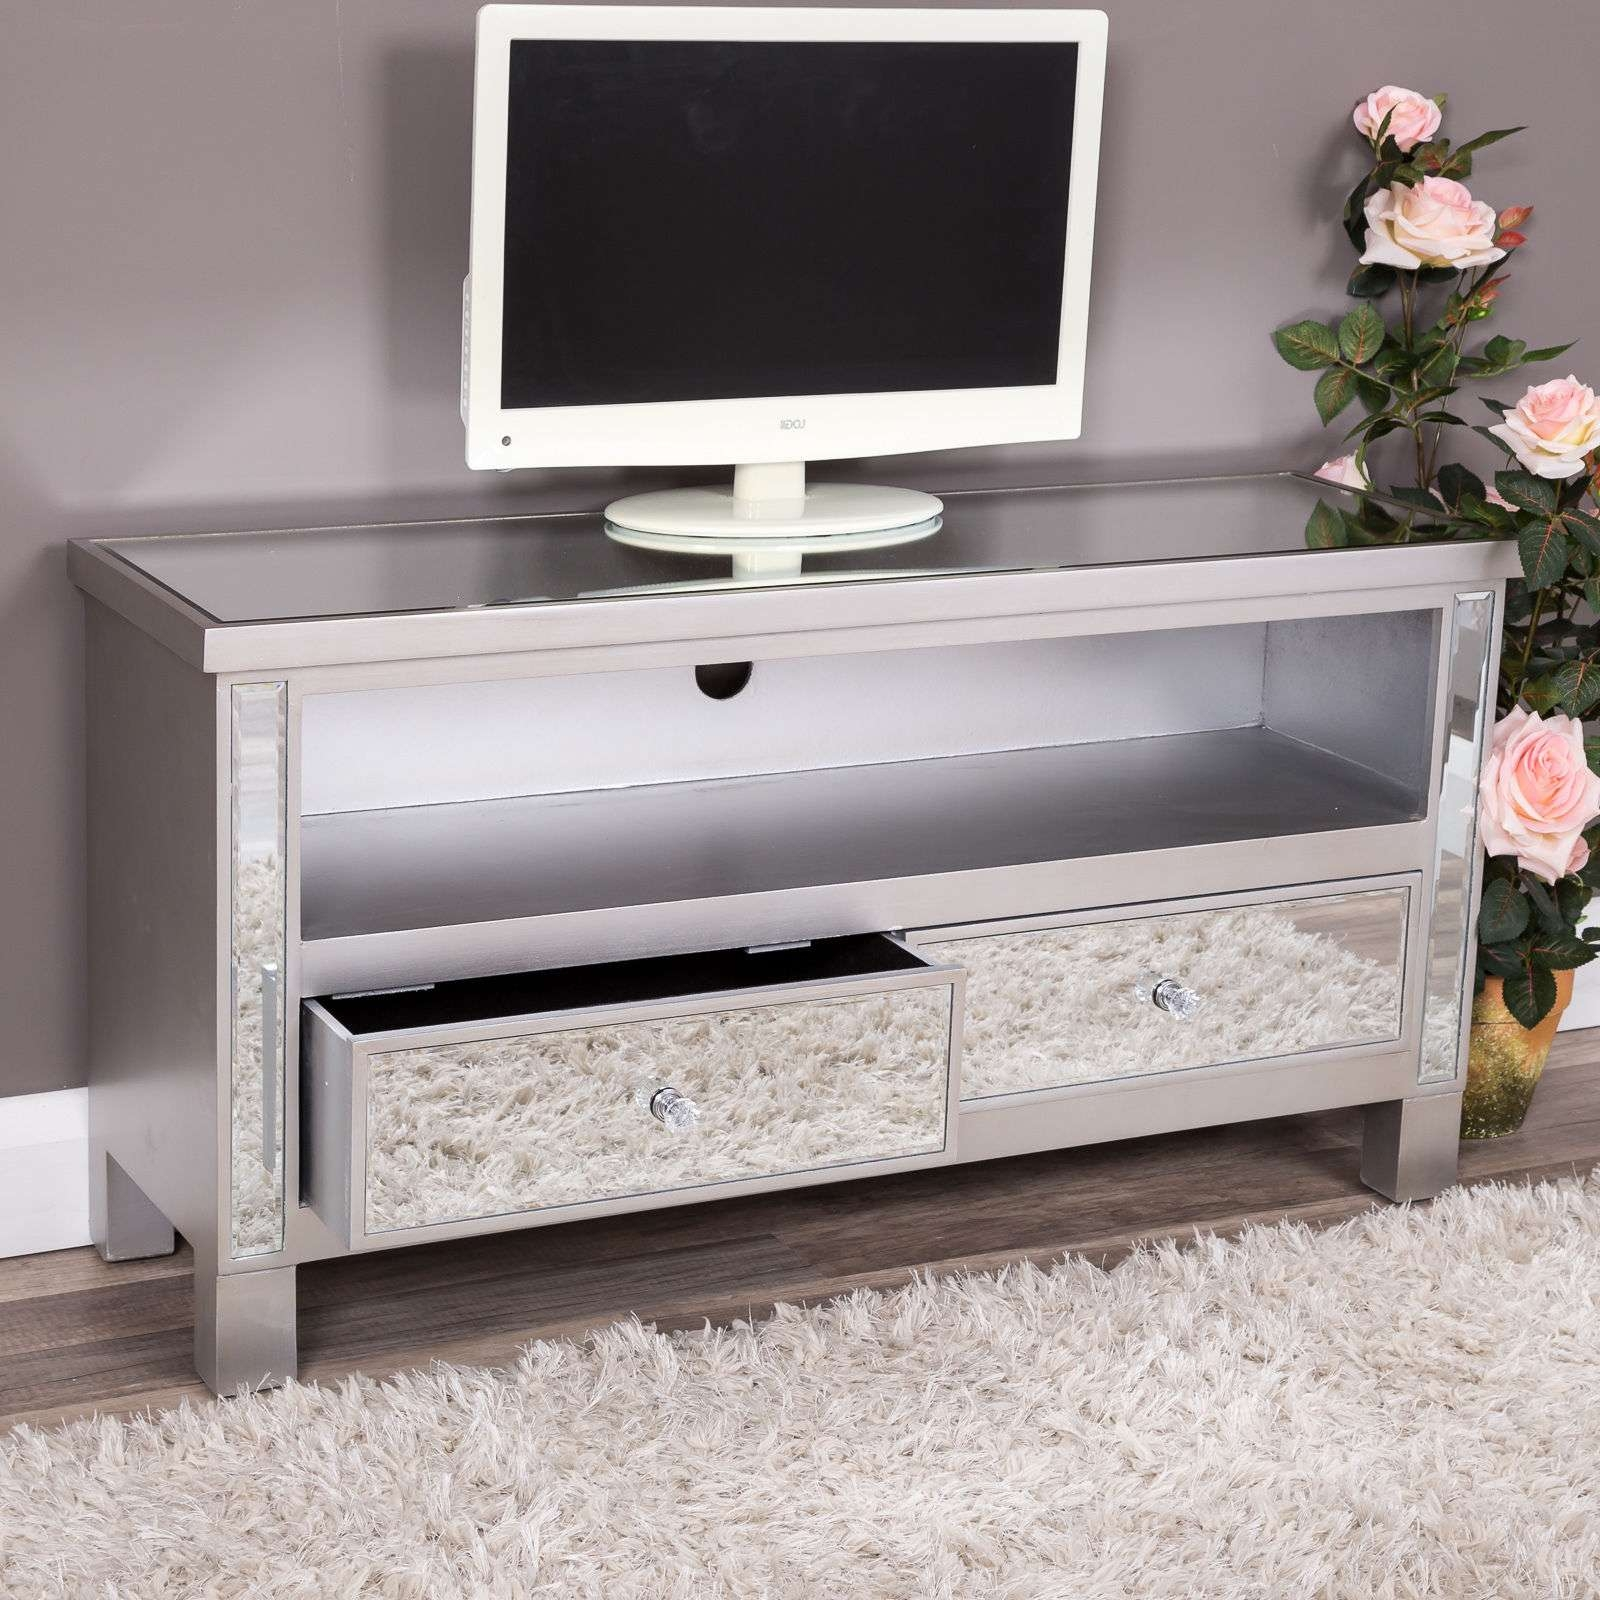 Silver Mirrored Glass 2 Drawer Tv Entertainment Cabinet Stand Unit Intended For Mirrored Tv Cabinets (View 17 of 20)